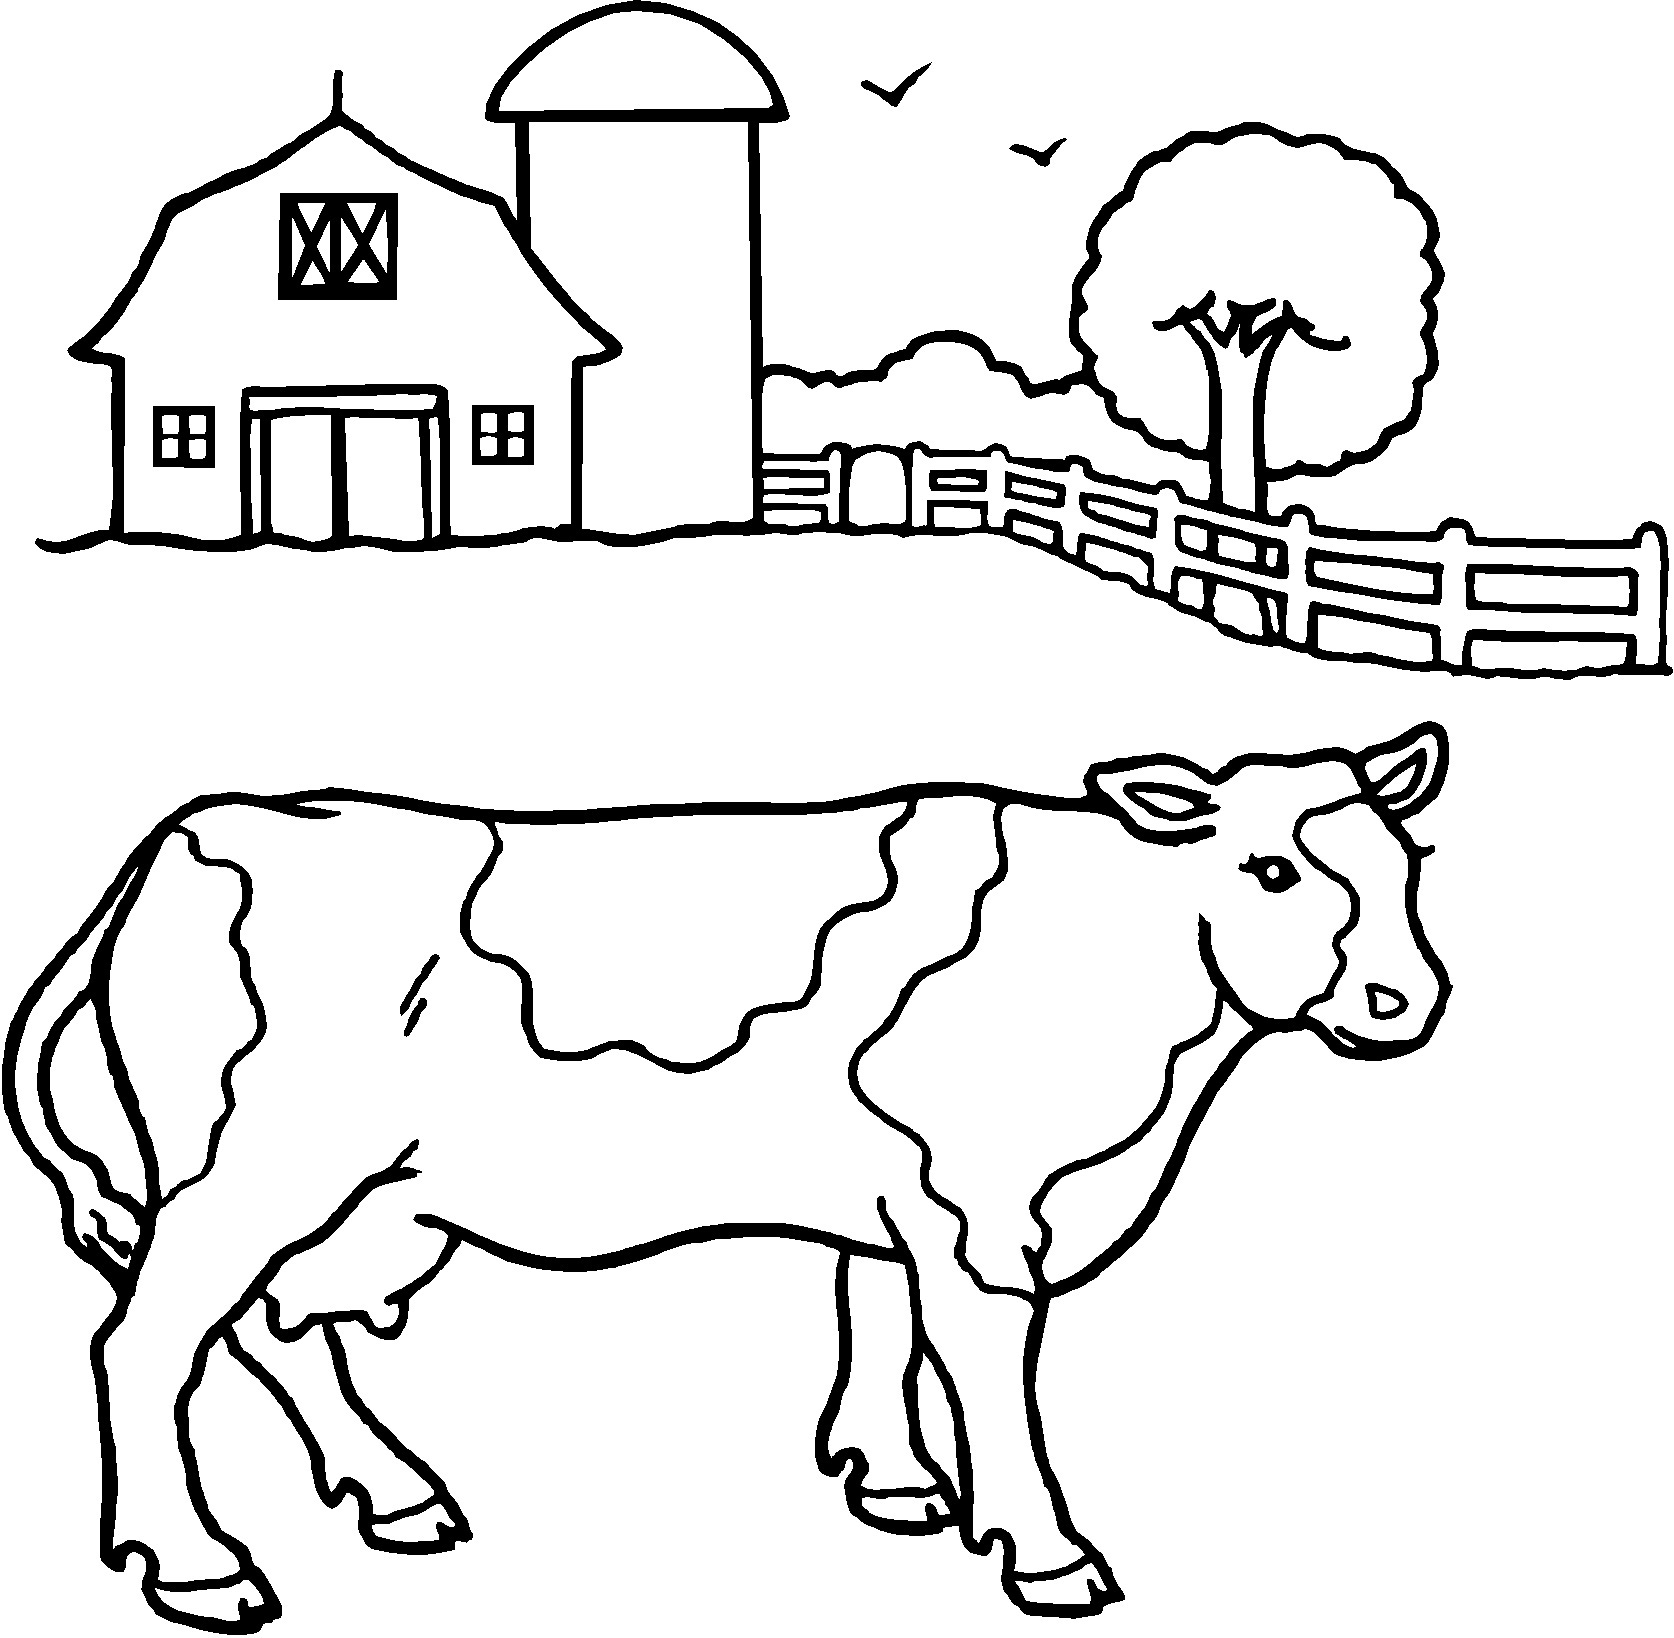 Cattle coloring #4, Download drawings